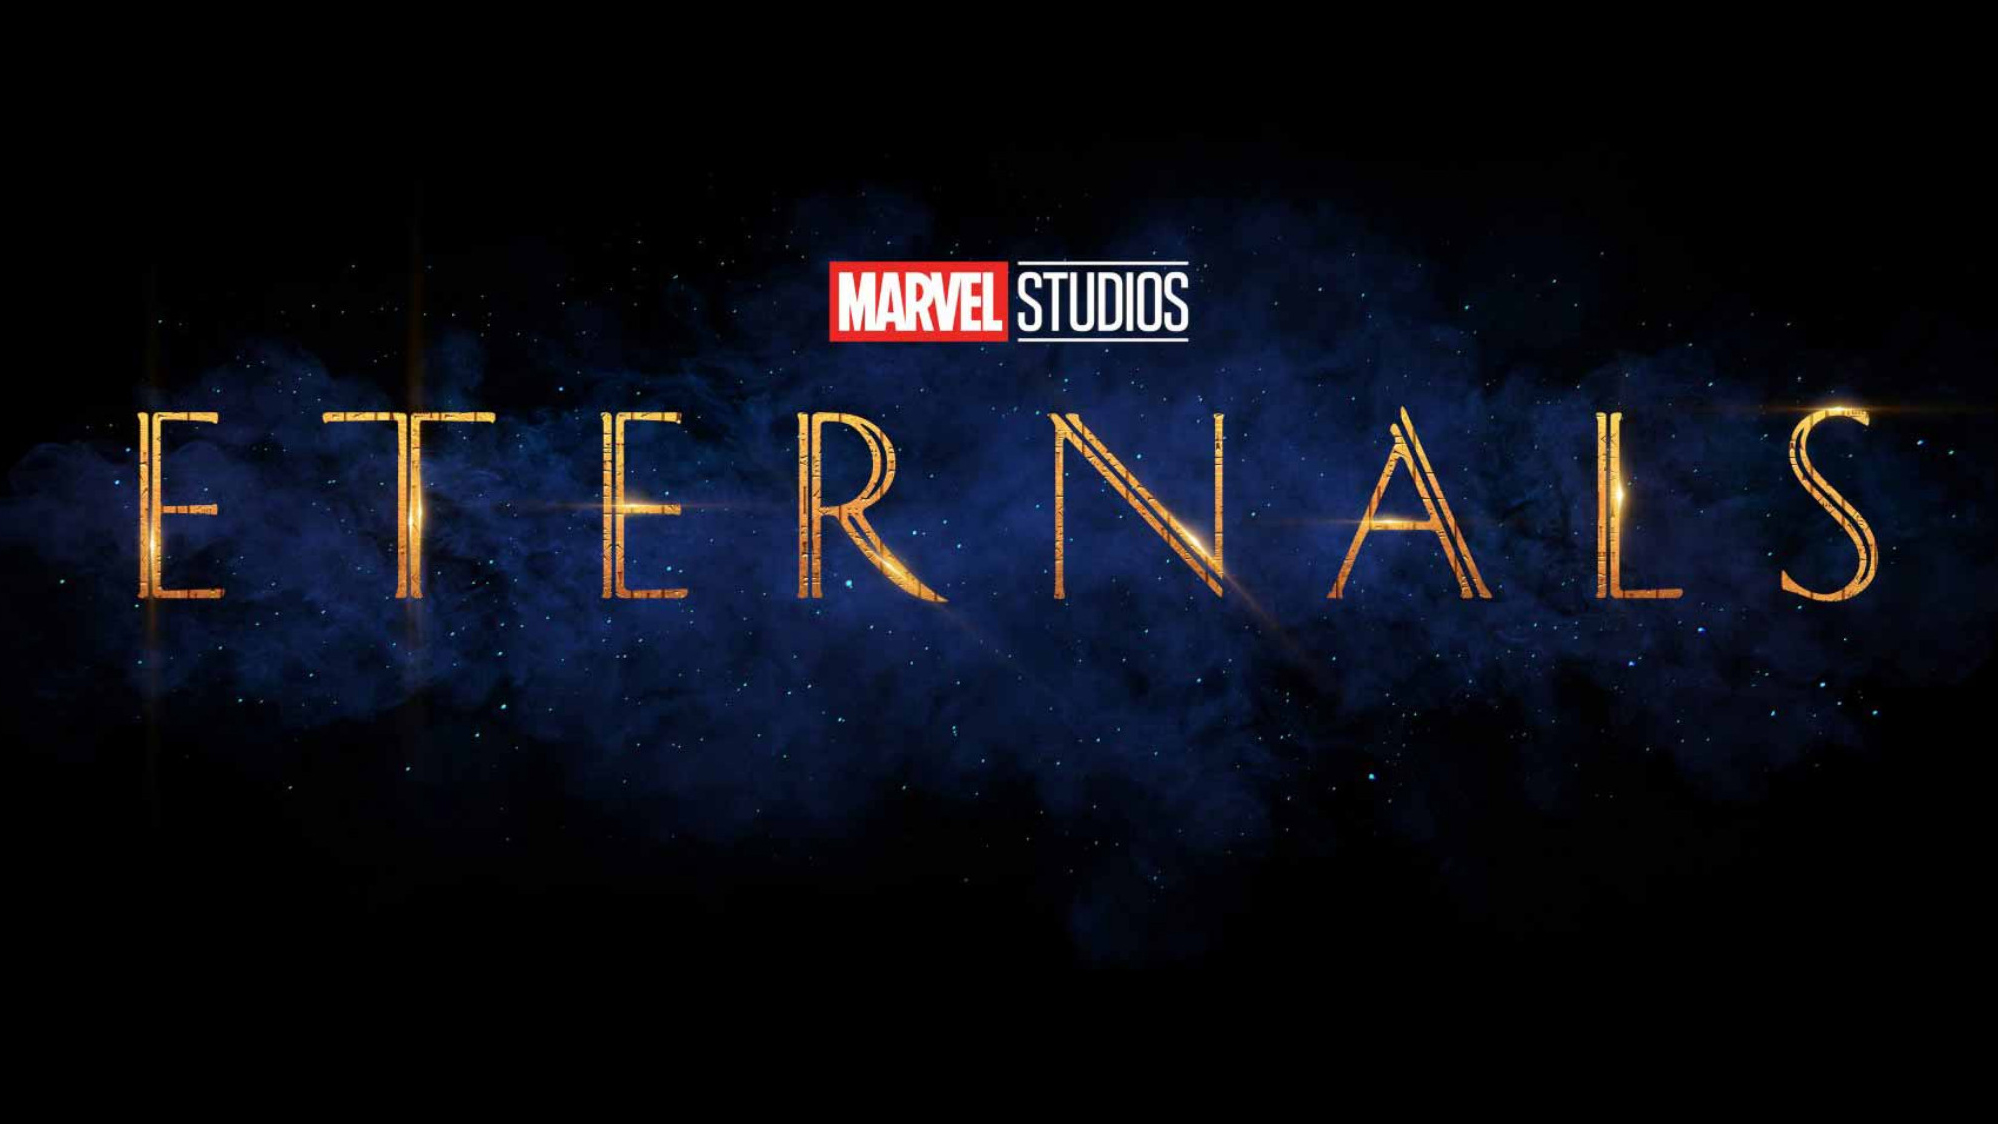 Marvel's The Eternals: release date, cast, trailer and what we know |  TechRadar